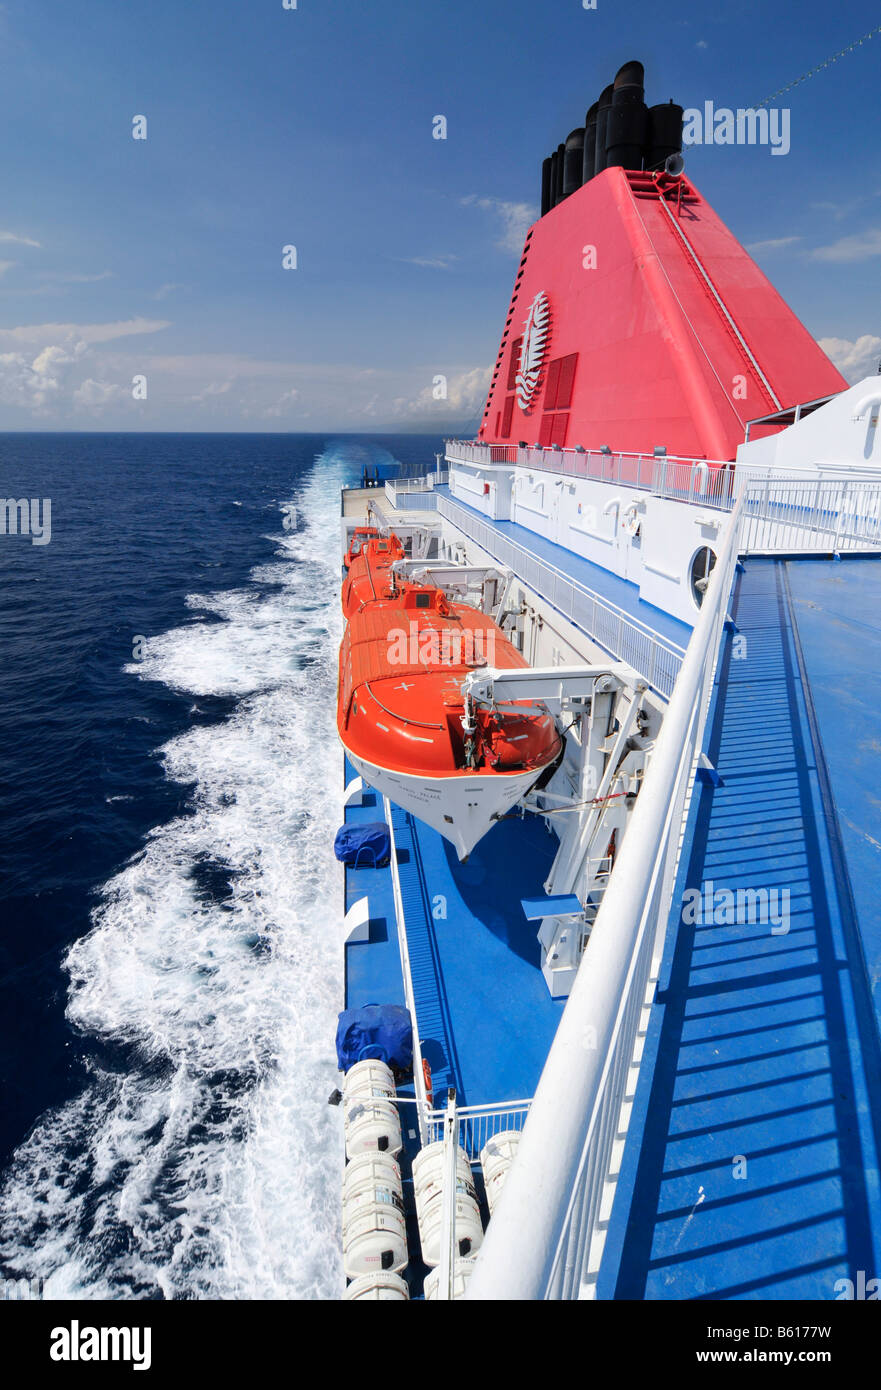 Lifeboats suspended on the side of a car ferry at sea, Mediterranean, Europe - Stock Image